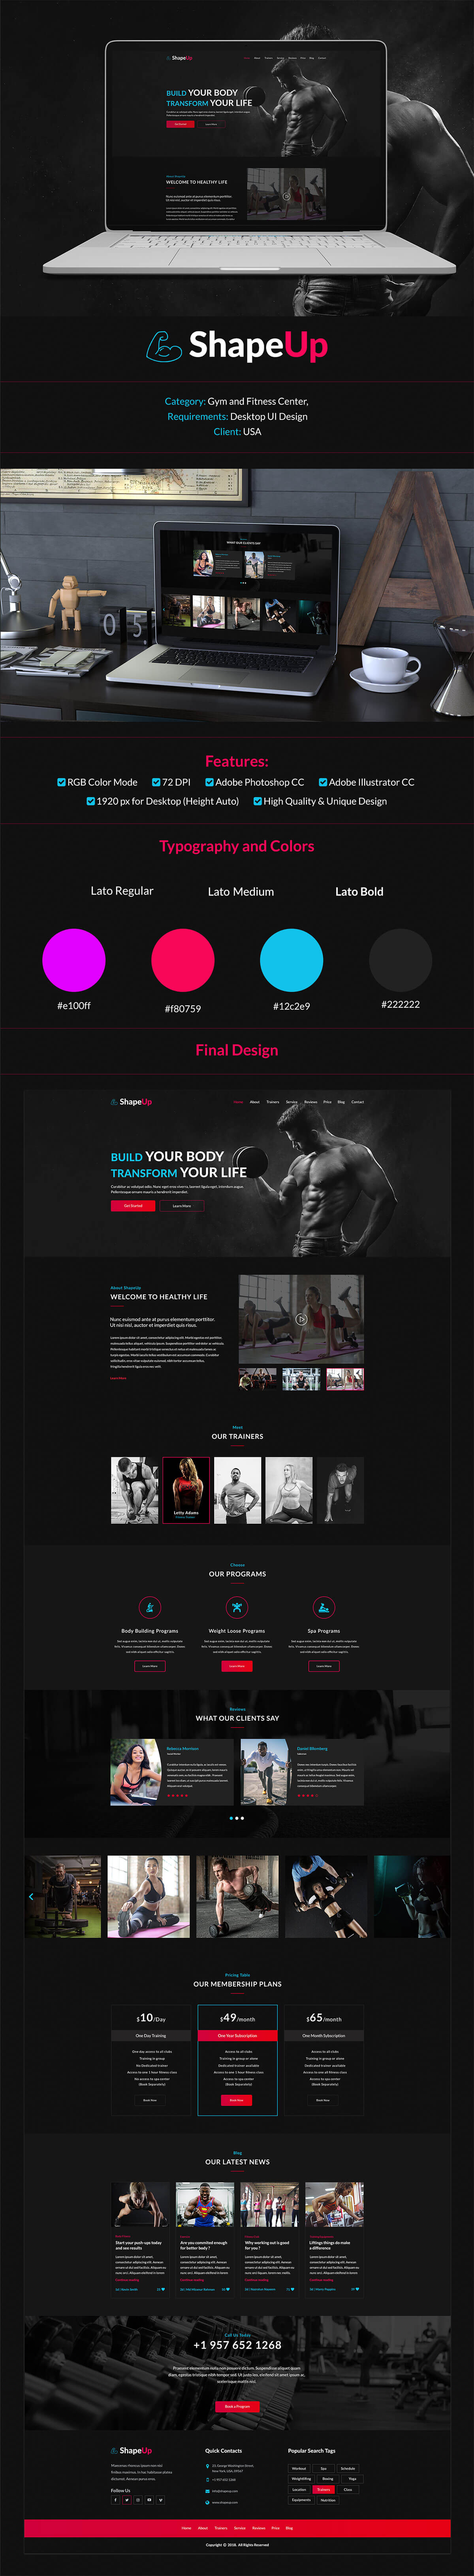 Free ShapeUp Gym Website Template